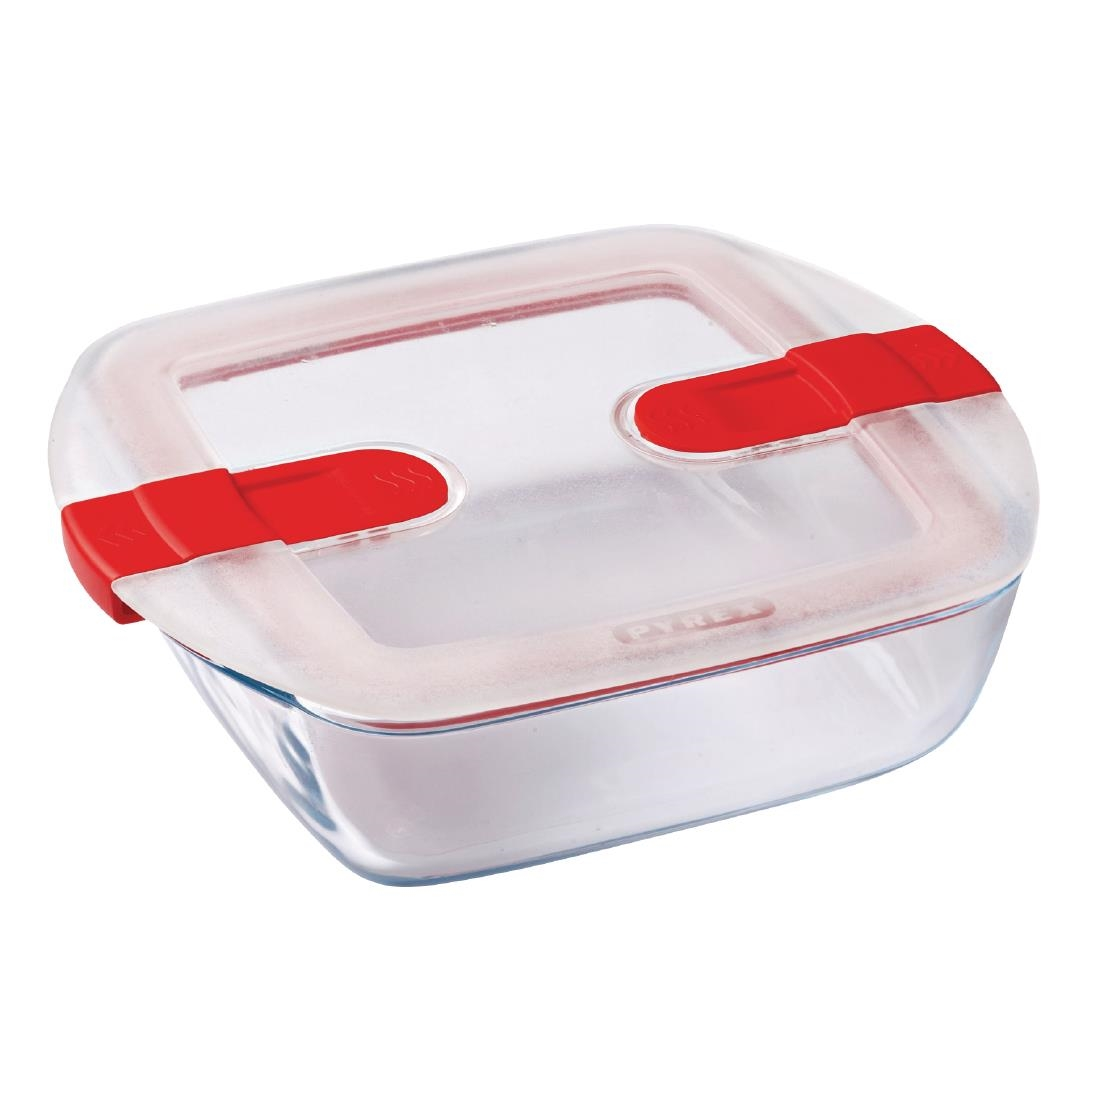 Image of Pyrex Cook and Heat Square Dish with Lid 1Ltr